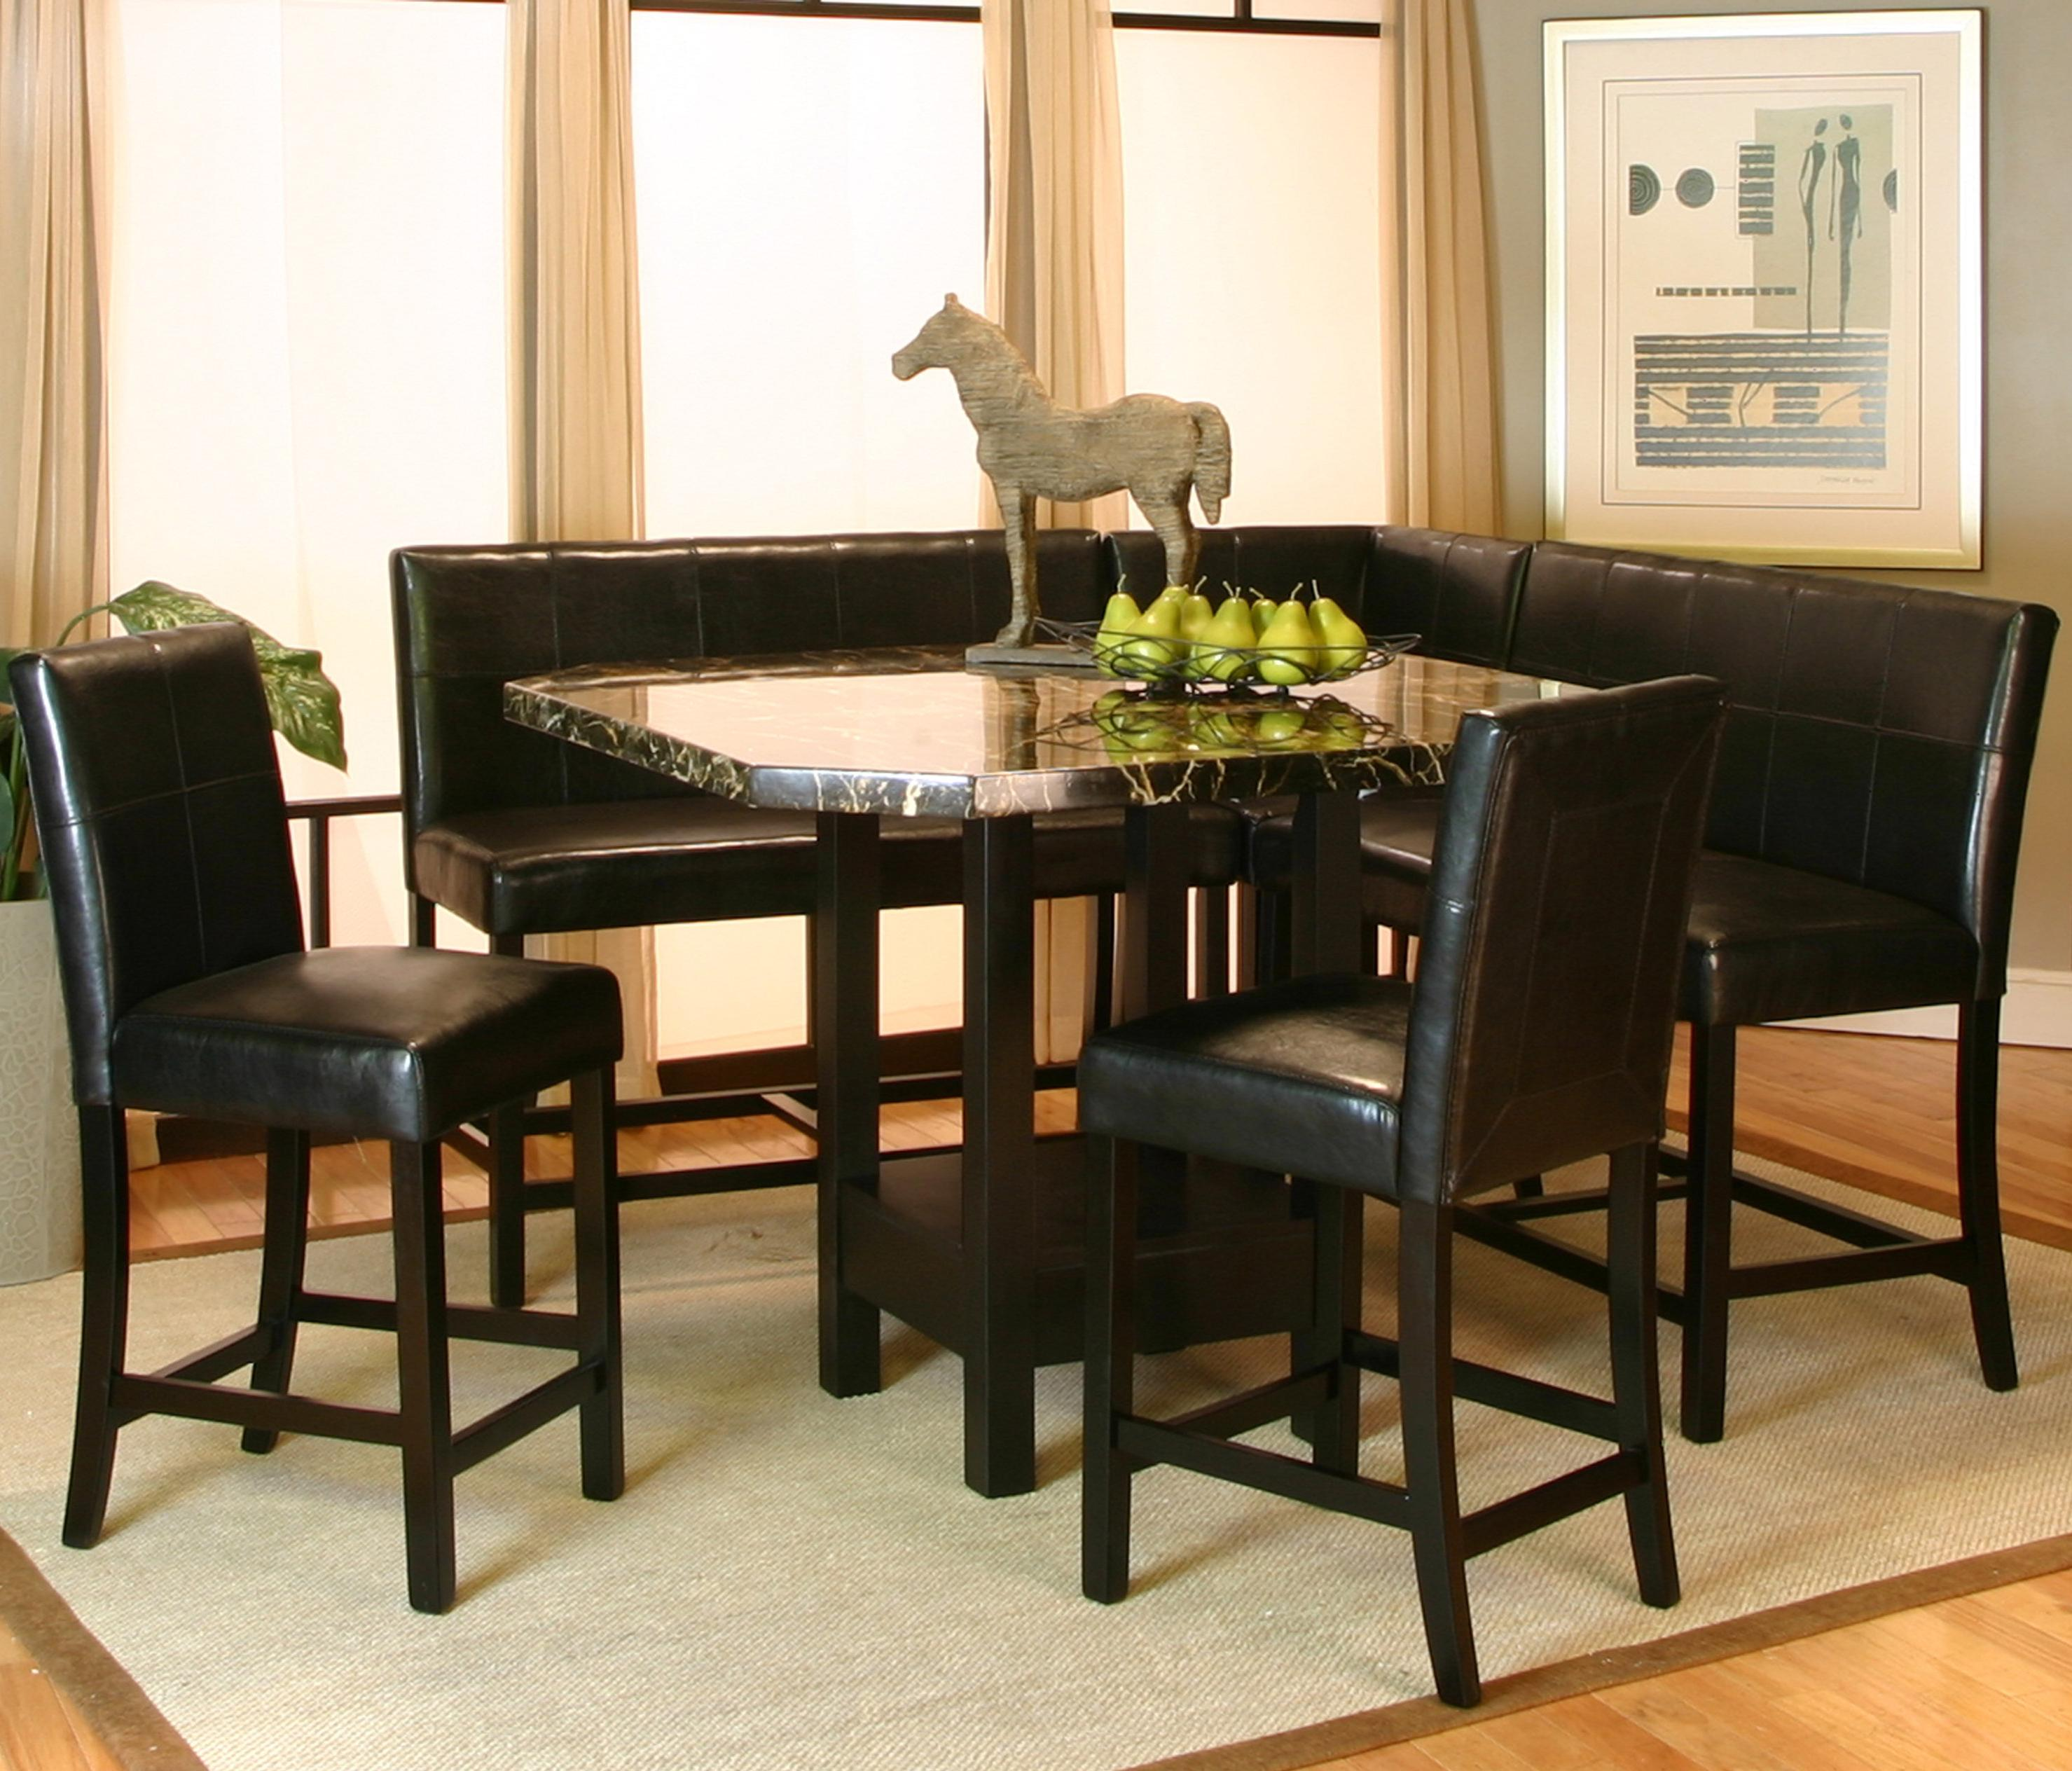 Chatham 6pc.pub Table W/Faux Marble Top Includes  1 Corner Bench  2 Benches   2 Counter Height Chairs  1 Faux Marble Top Counter Height Table (48x48x36)